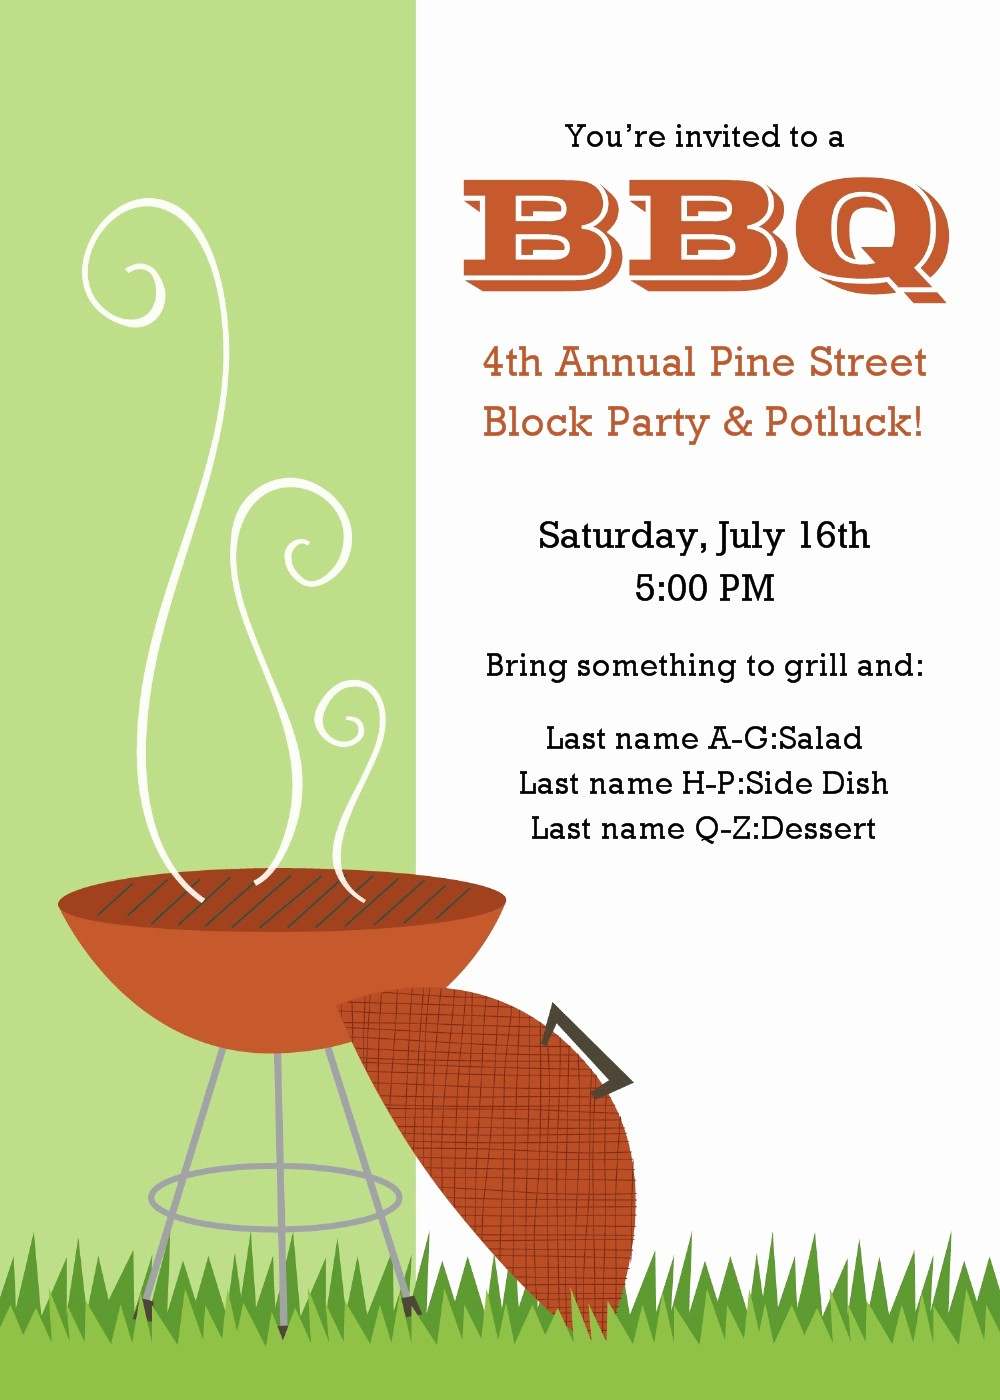 Free Downloadable Bbq Invitation Template Lovely 20 Free Barbeque Flyer Templates Demplates